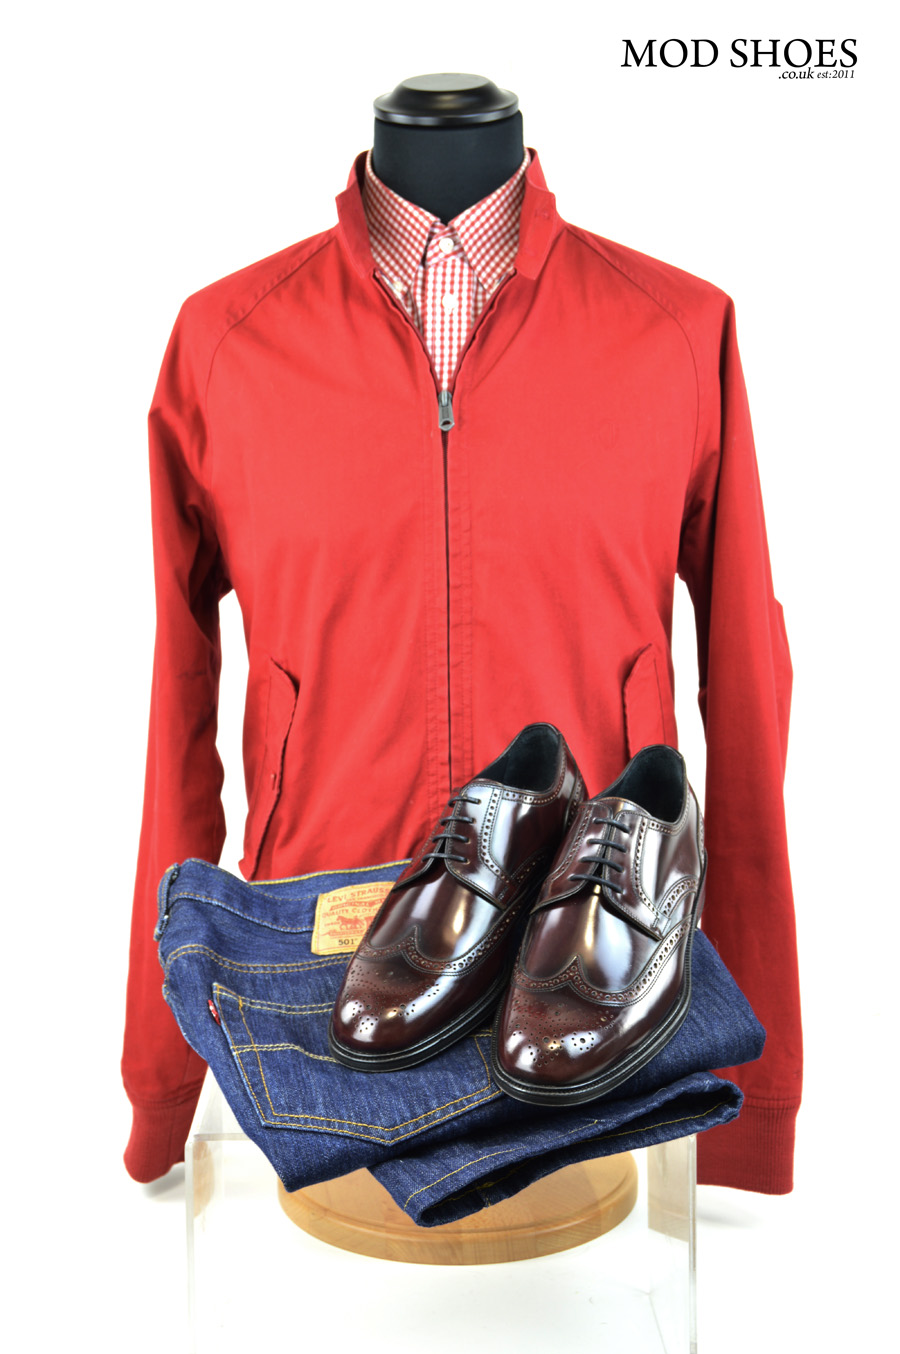 modshoes oxblood brogues with jeans harrington